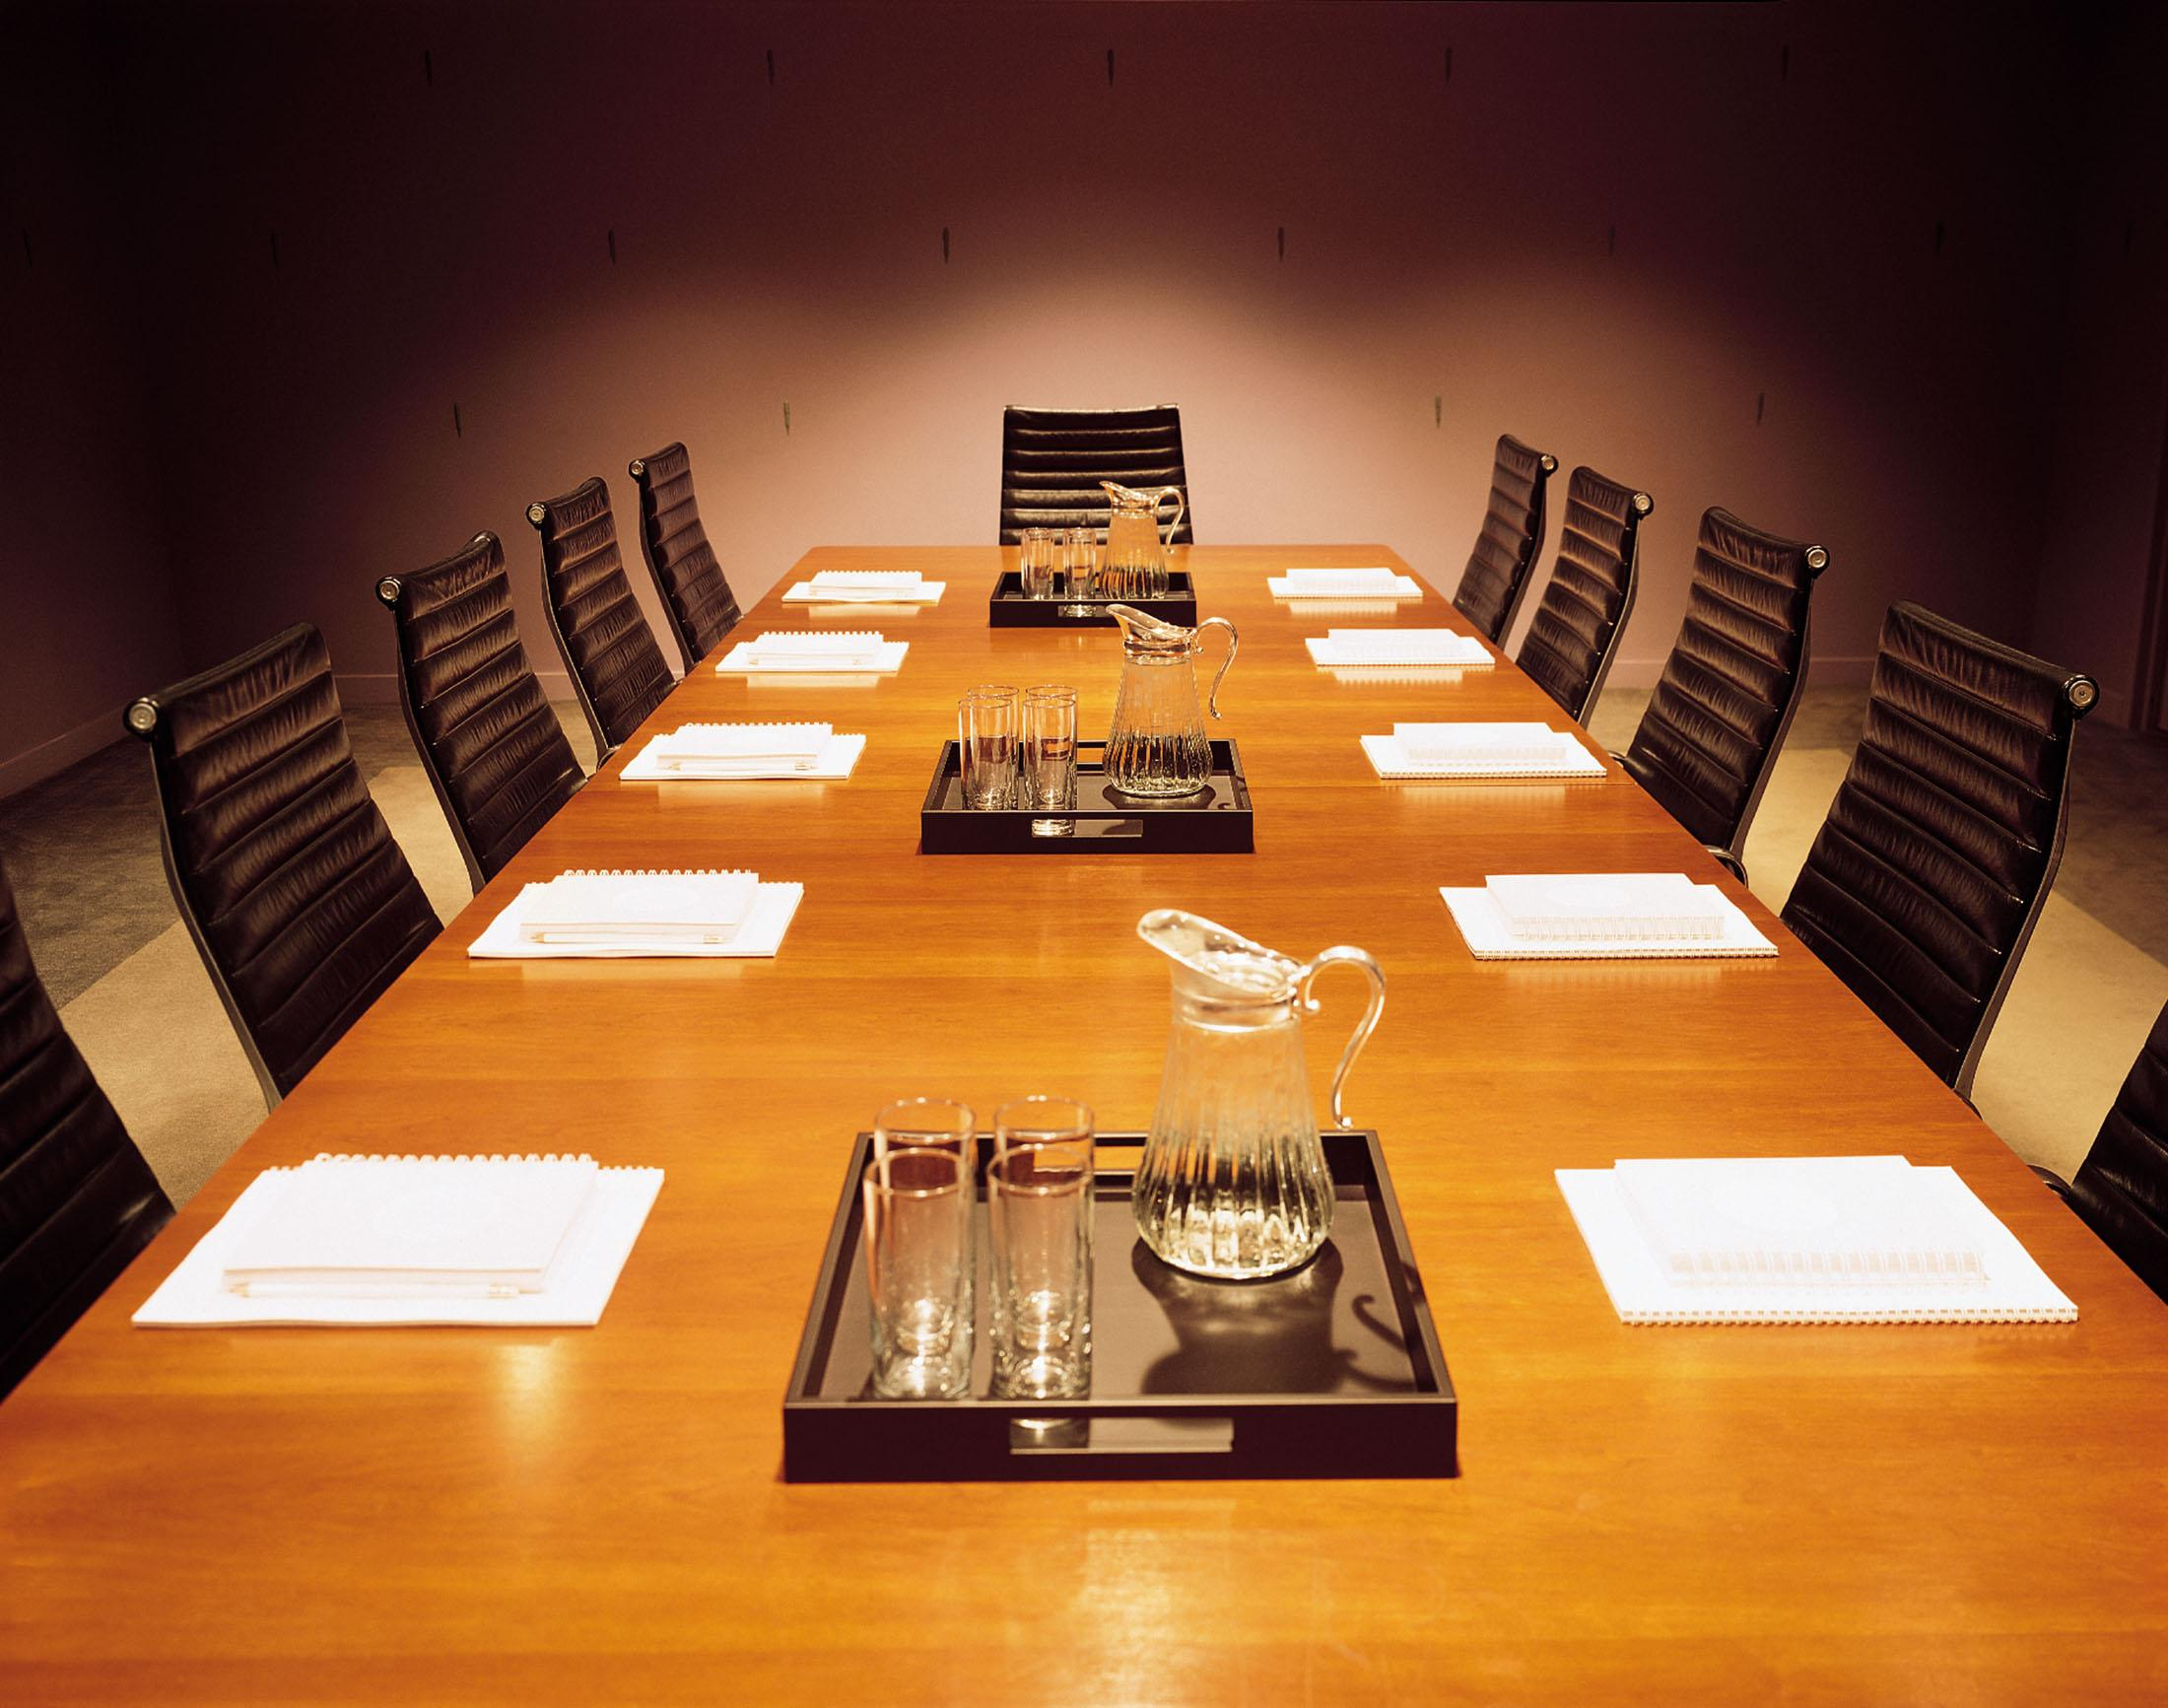 Board room table set for a meeting